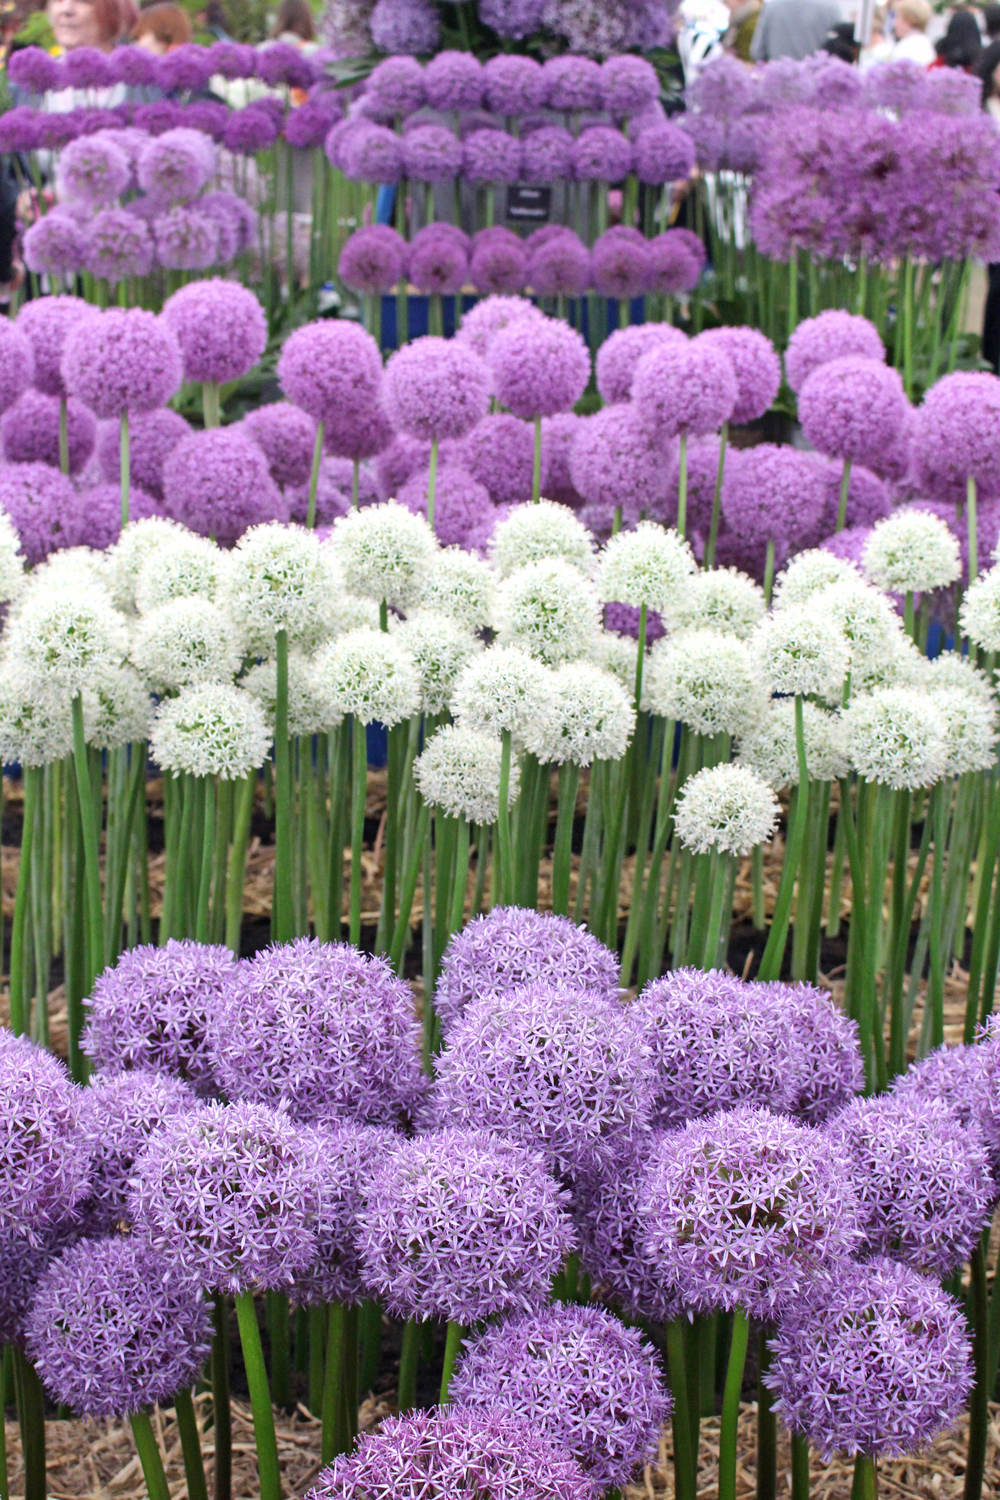 Alliums at Chelsea Flower Show 2018 - London lifestyle blog